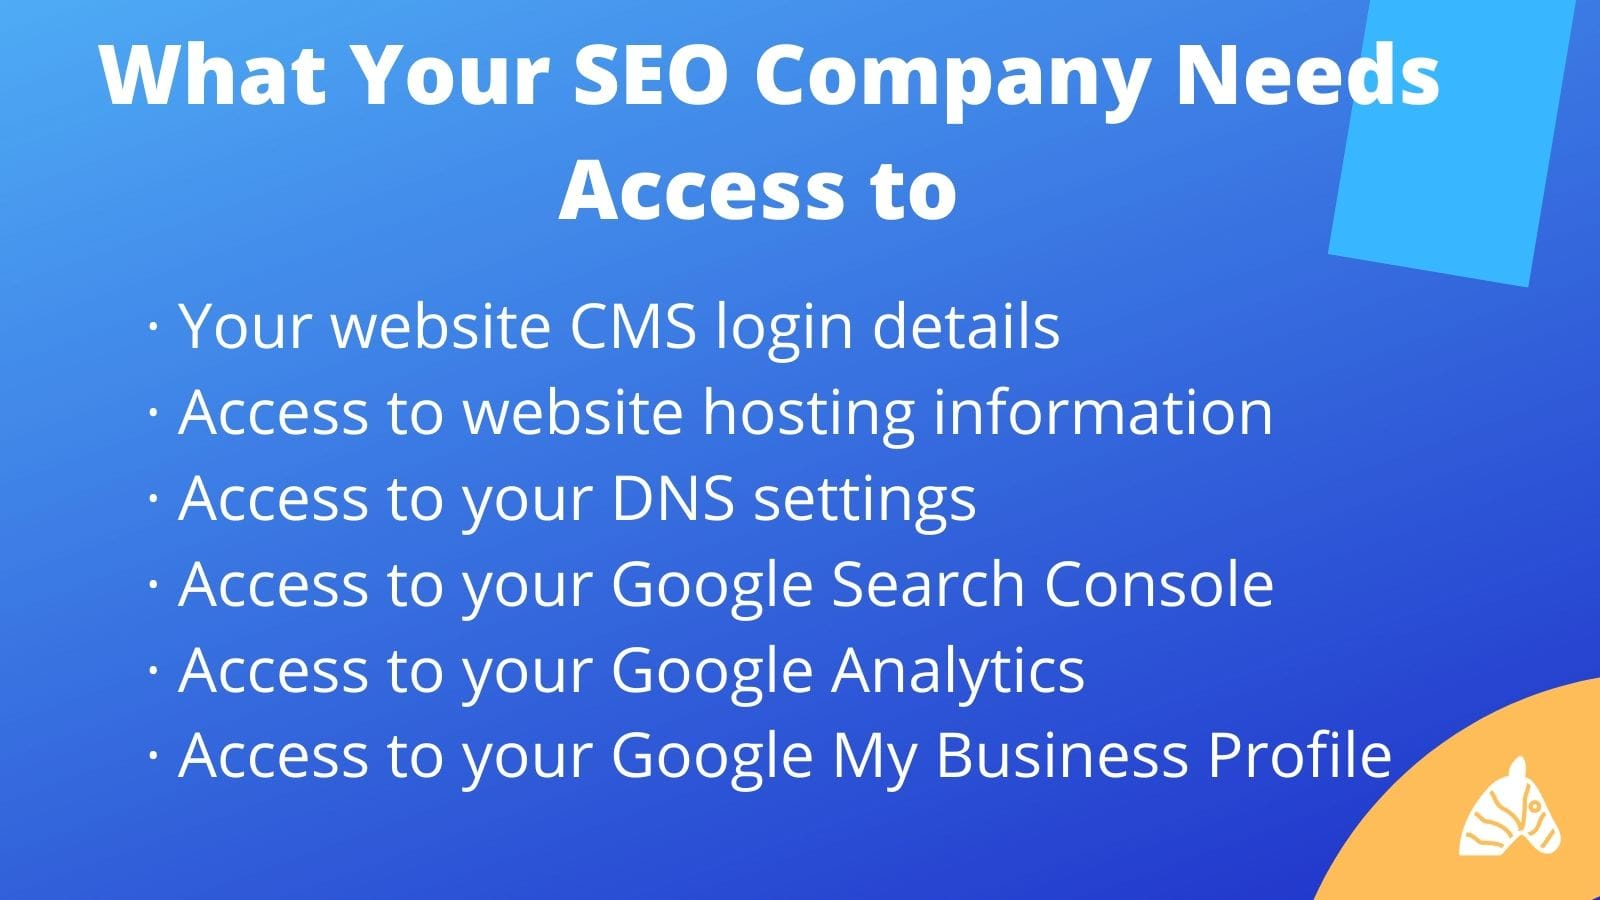 programs that your SEO company needs access to